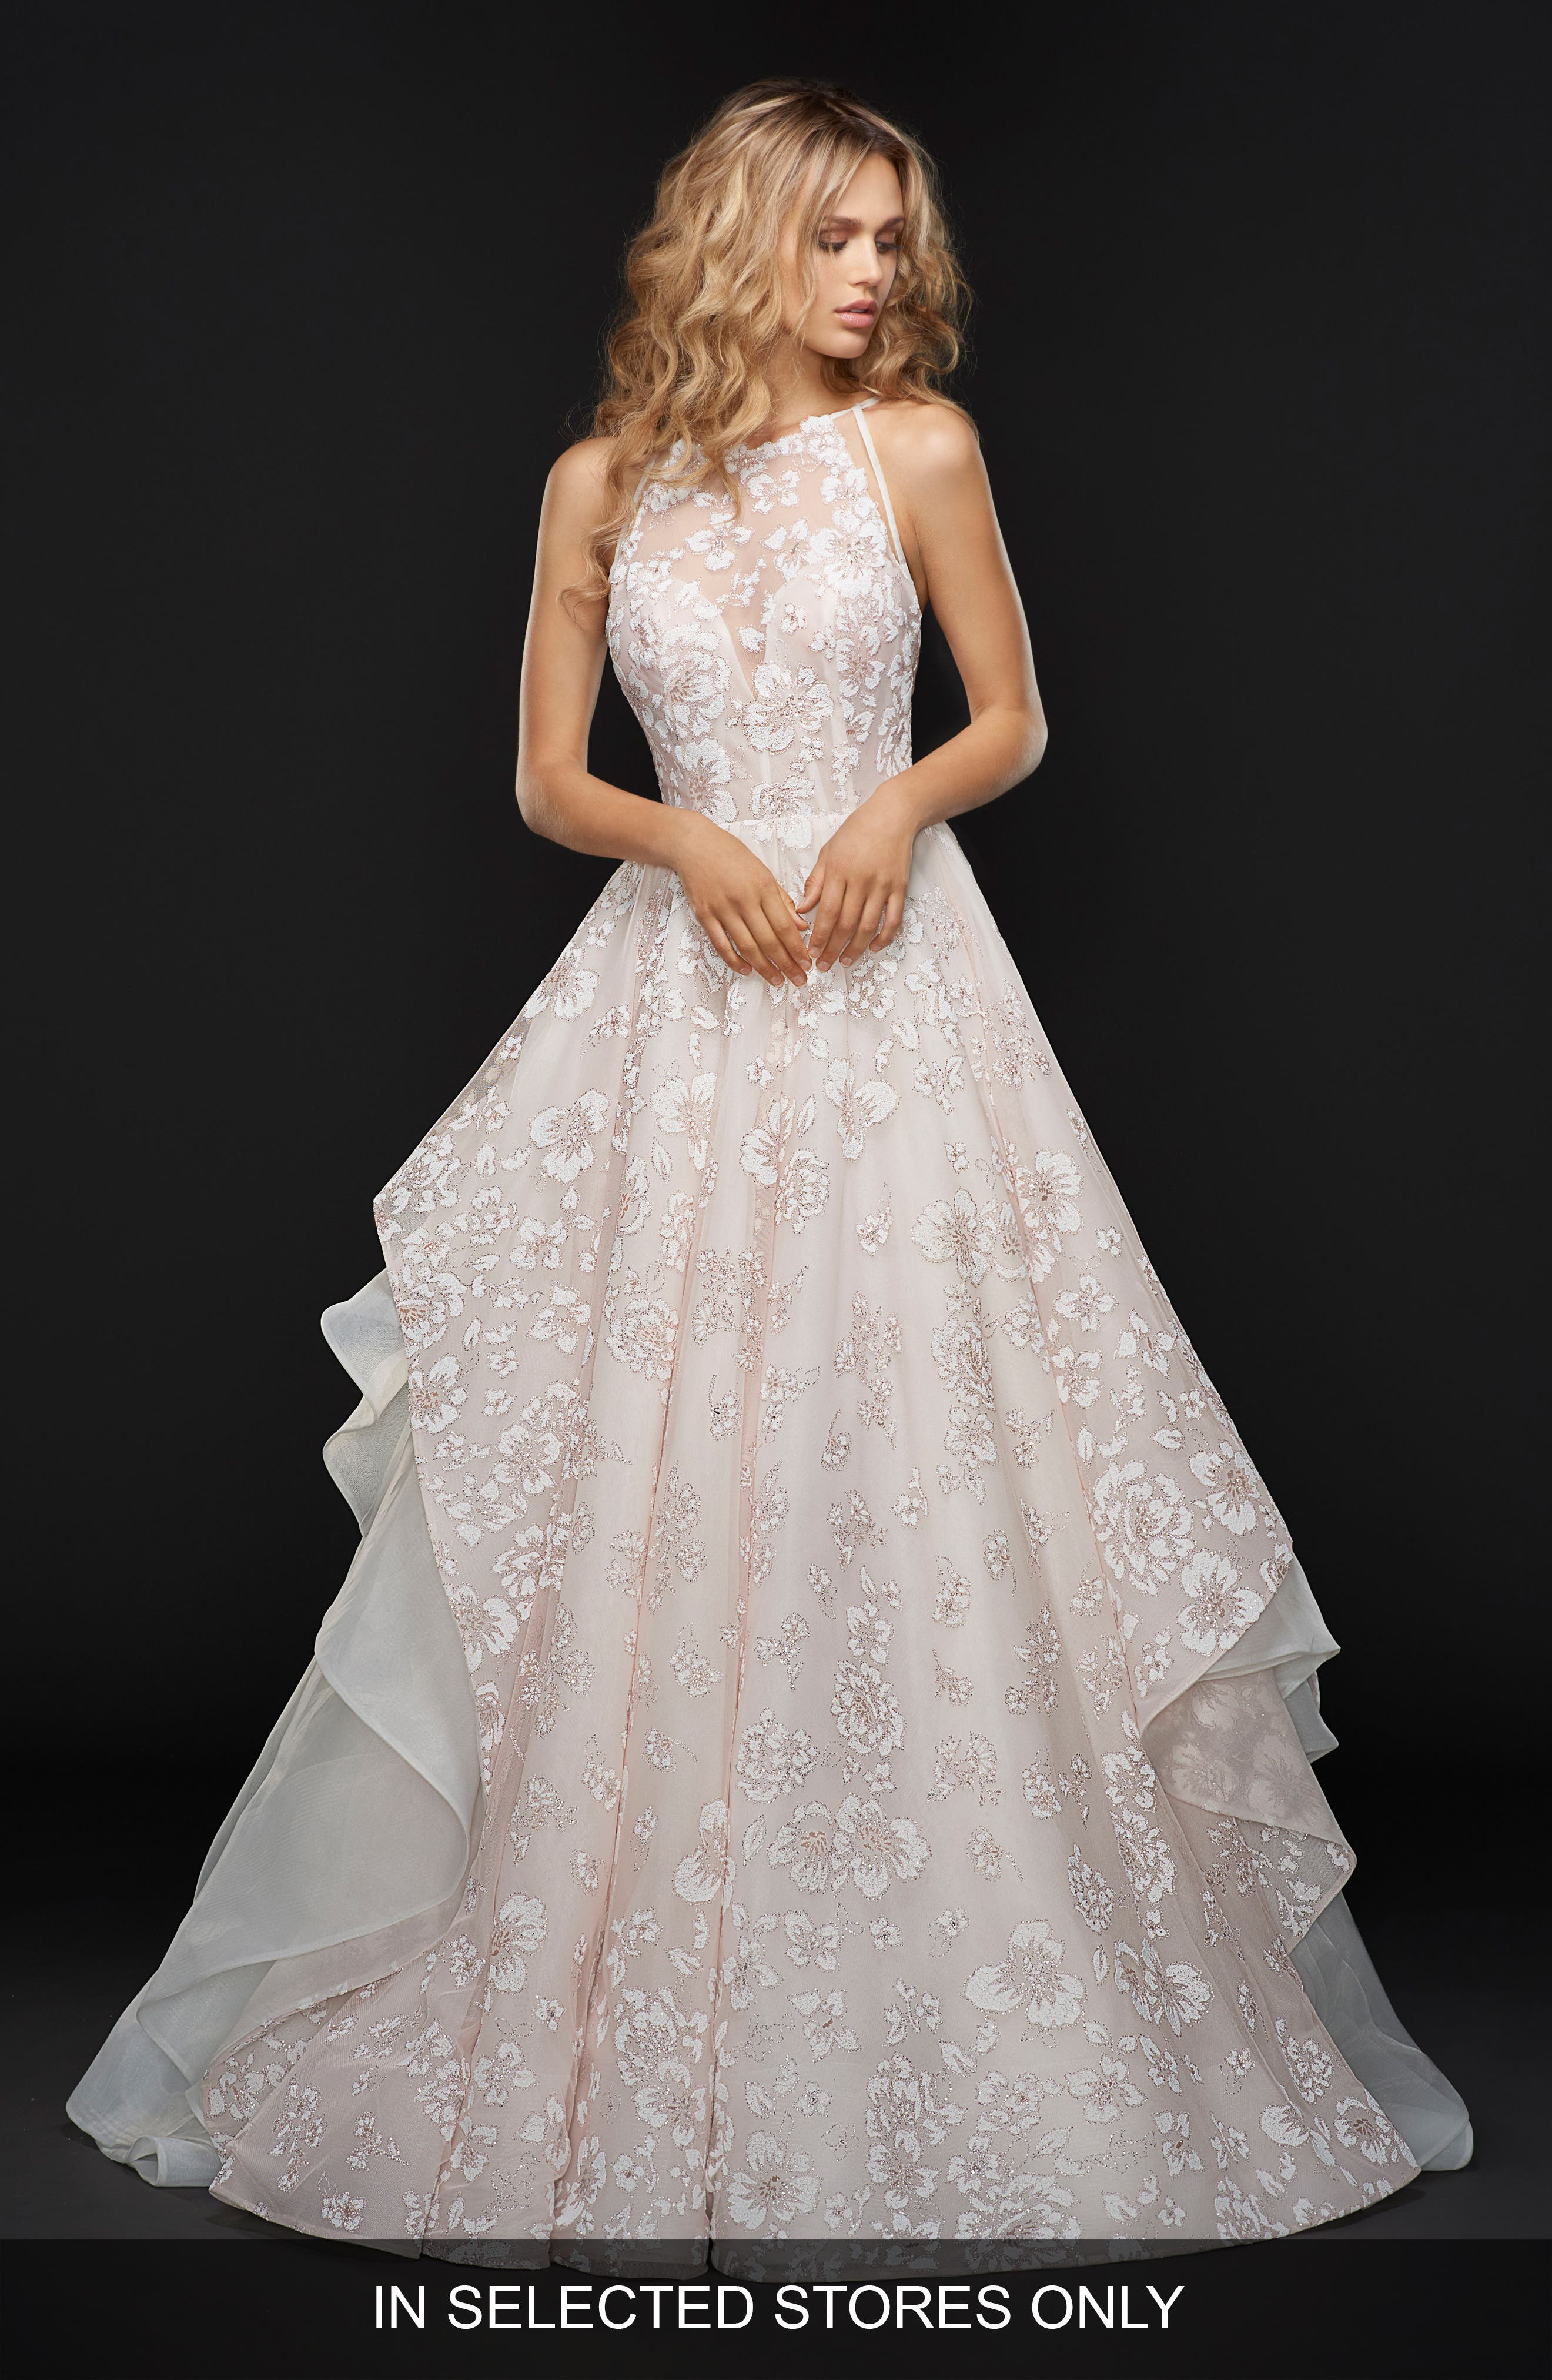 Hayley Paige Reagan Floral Embroidered Layered Ballgown, Size IN STORE ONLY - Pink